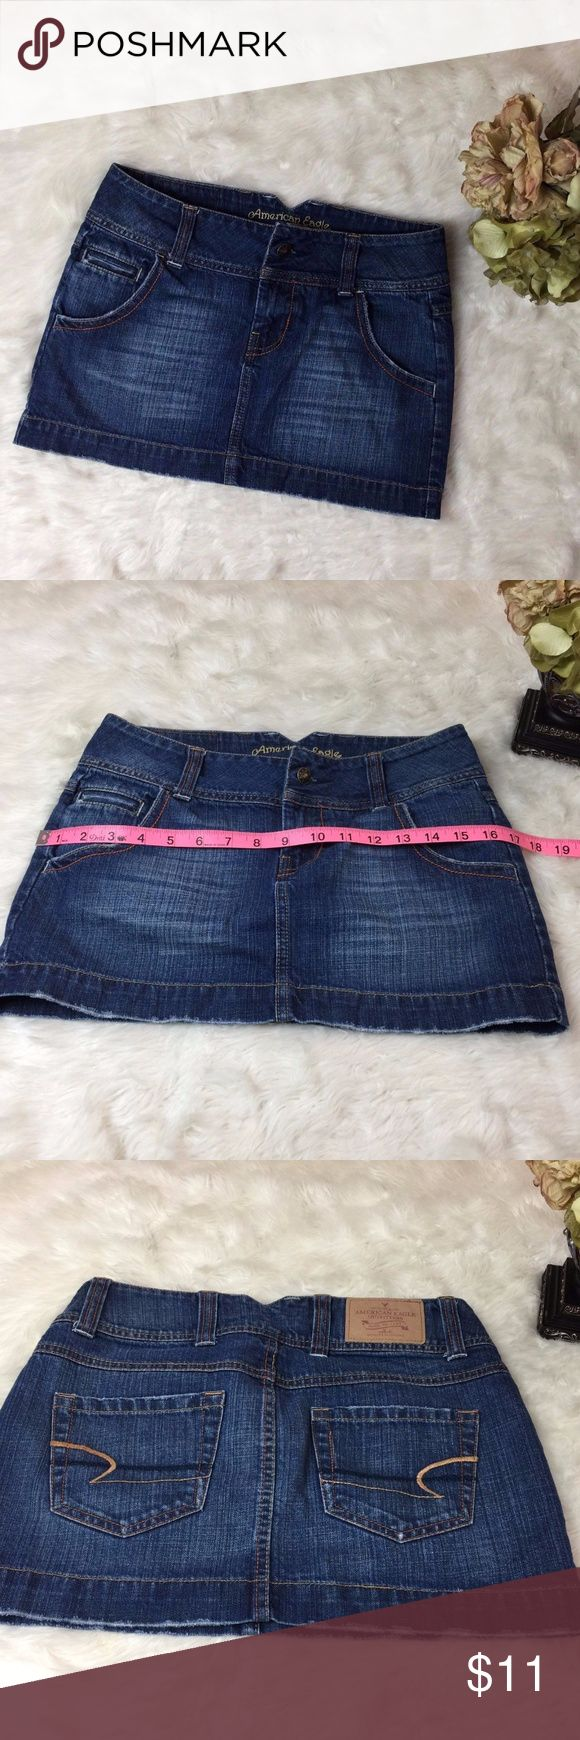 AMERICAN EAGLE Skirt Women size 0 Short Mini AMERICAN EAGLE Short Mini Skirt Distressed Denim Jean Womens Very Cute Blue great condition no noted flaws. come from a smoke free home Measurements: Are seen in pictures. American Eagle Skirts Mini